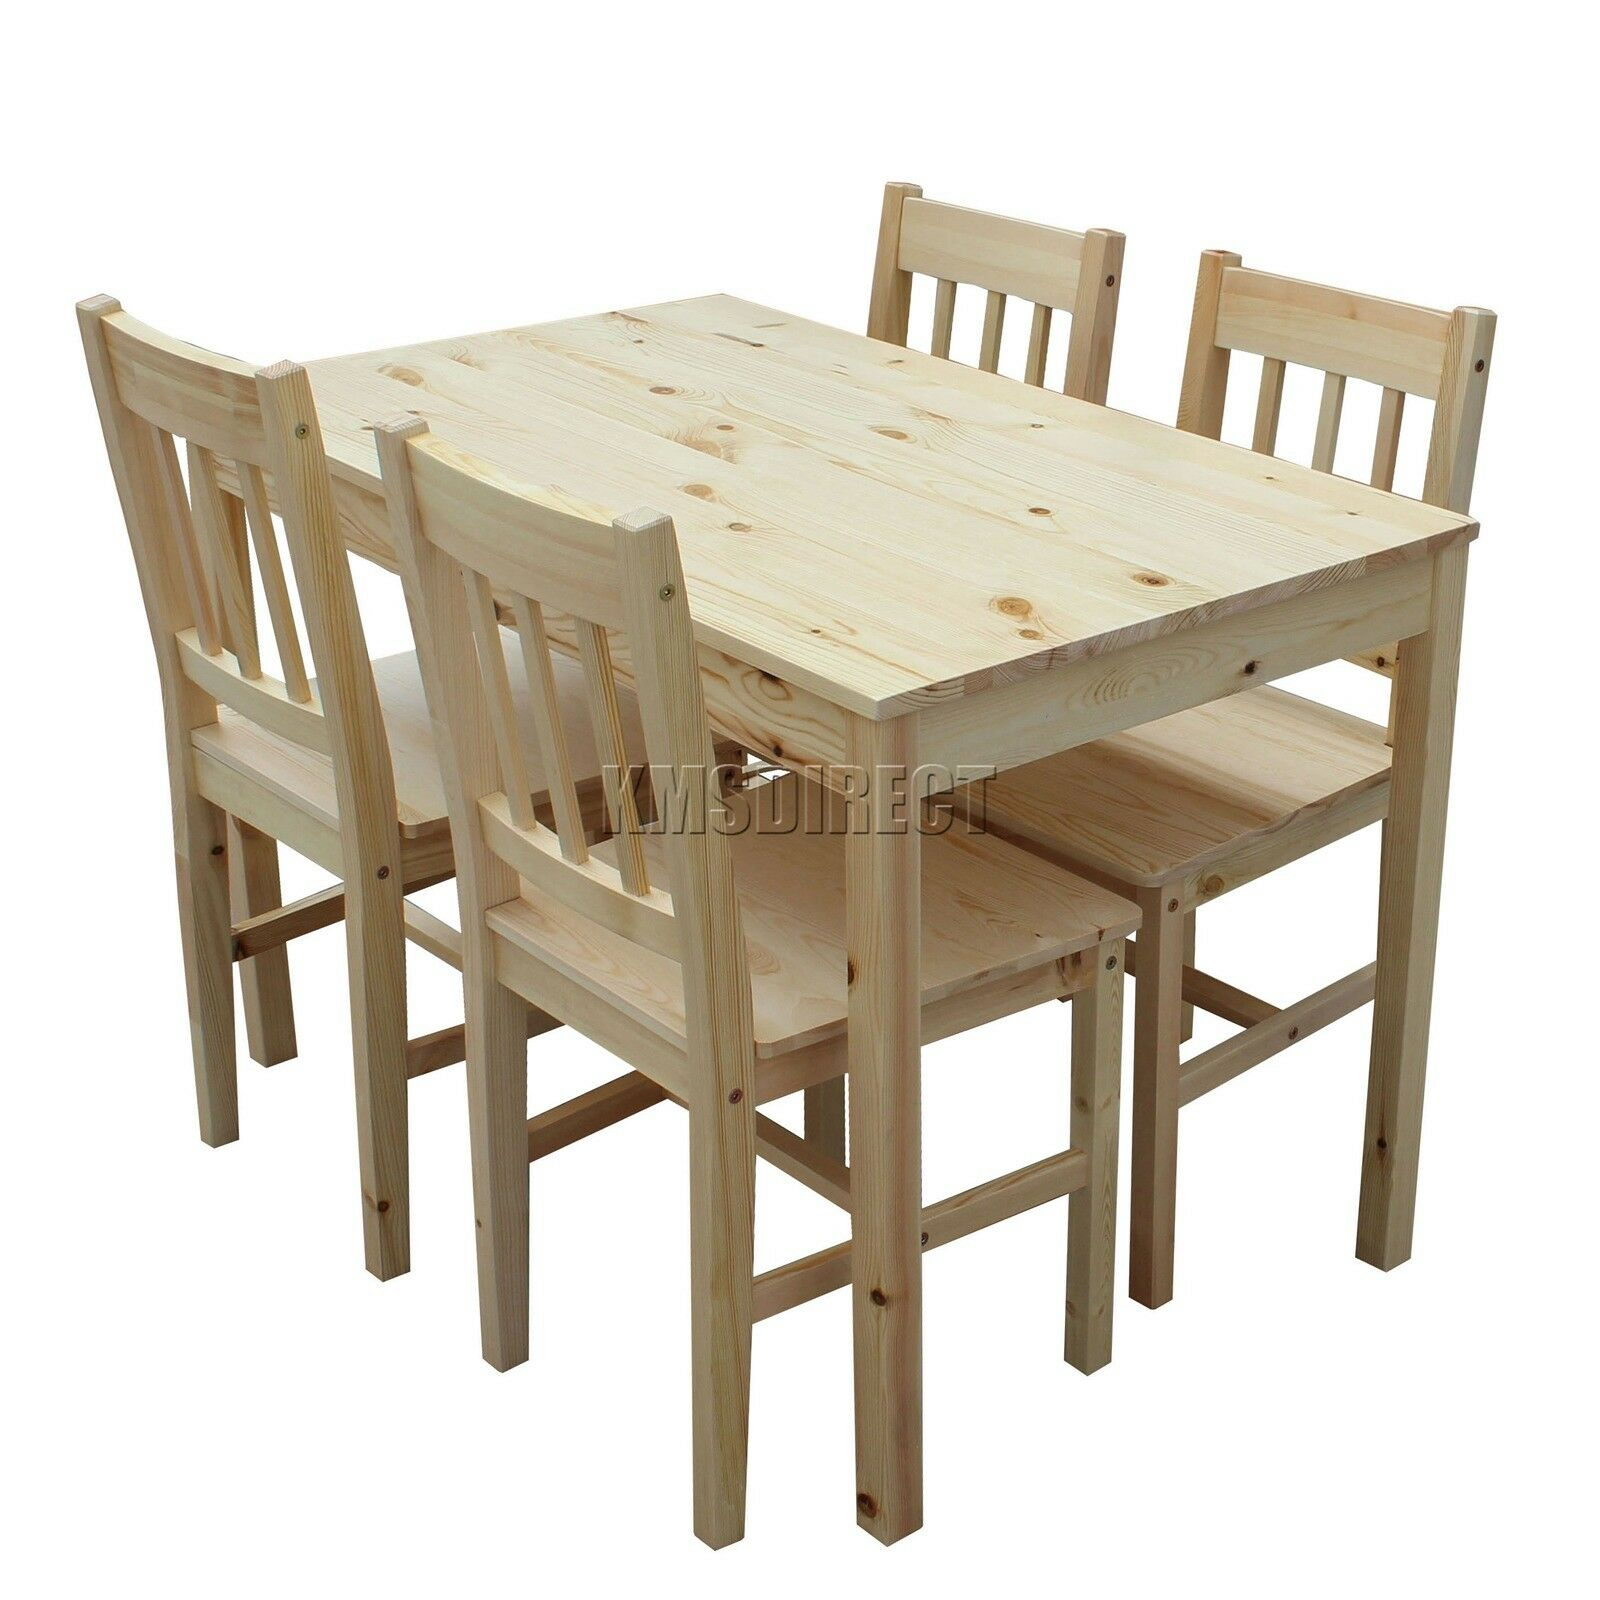 Foxhunter Quality Solid Wooden Dining Table And 4 Chairs Set Kitchen Ds02 Pine